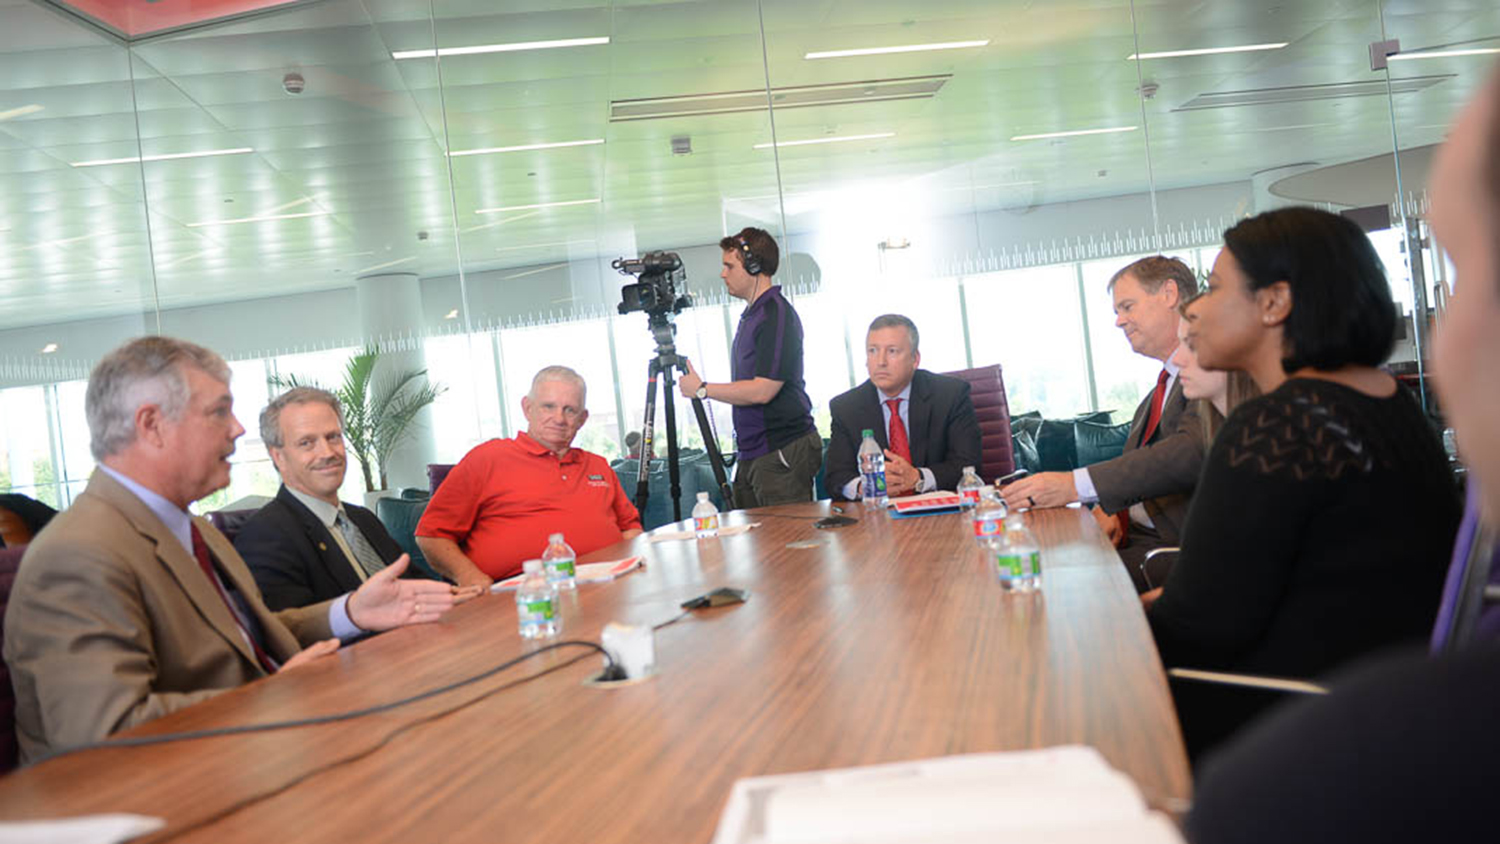 CALS-access-round-table-secondary-photo